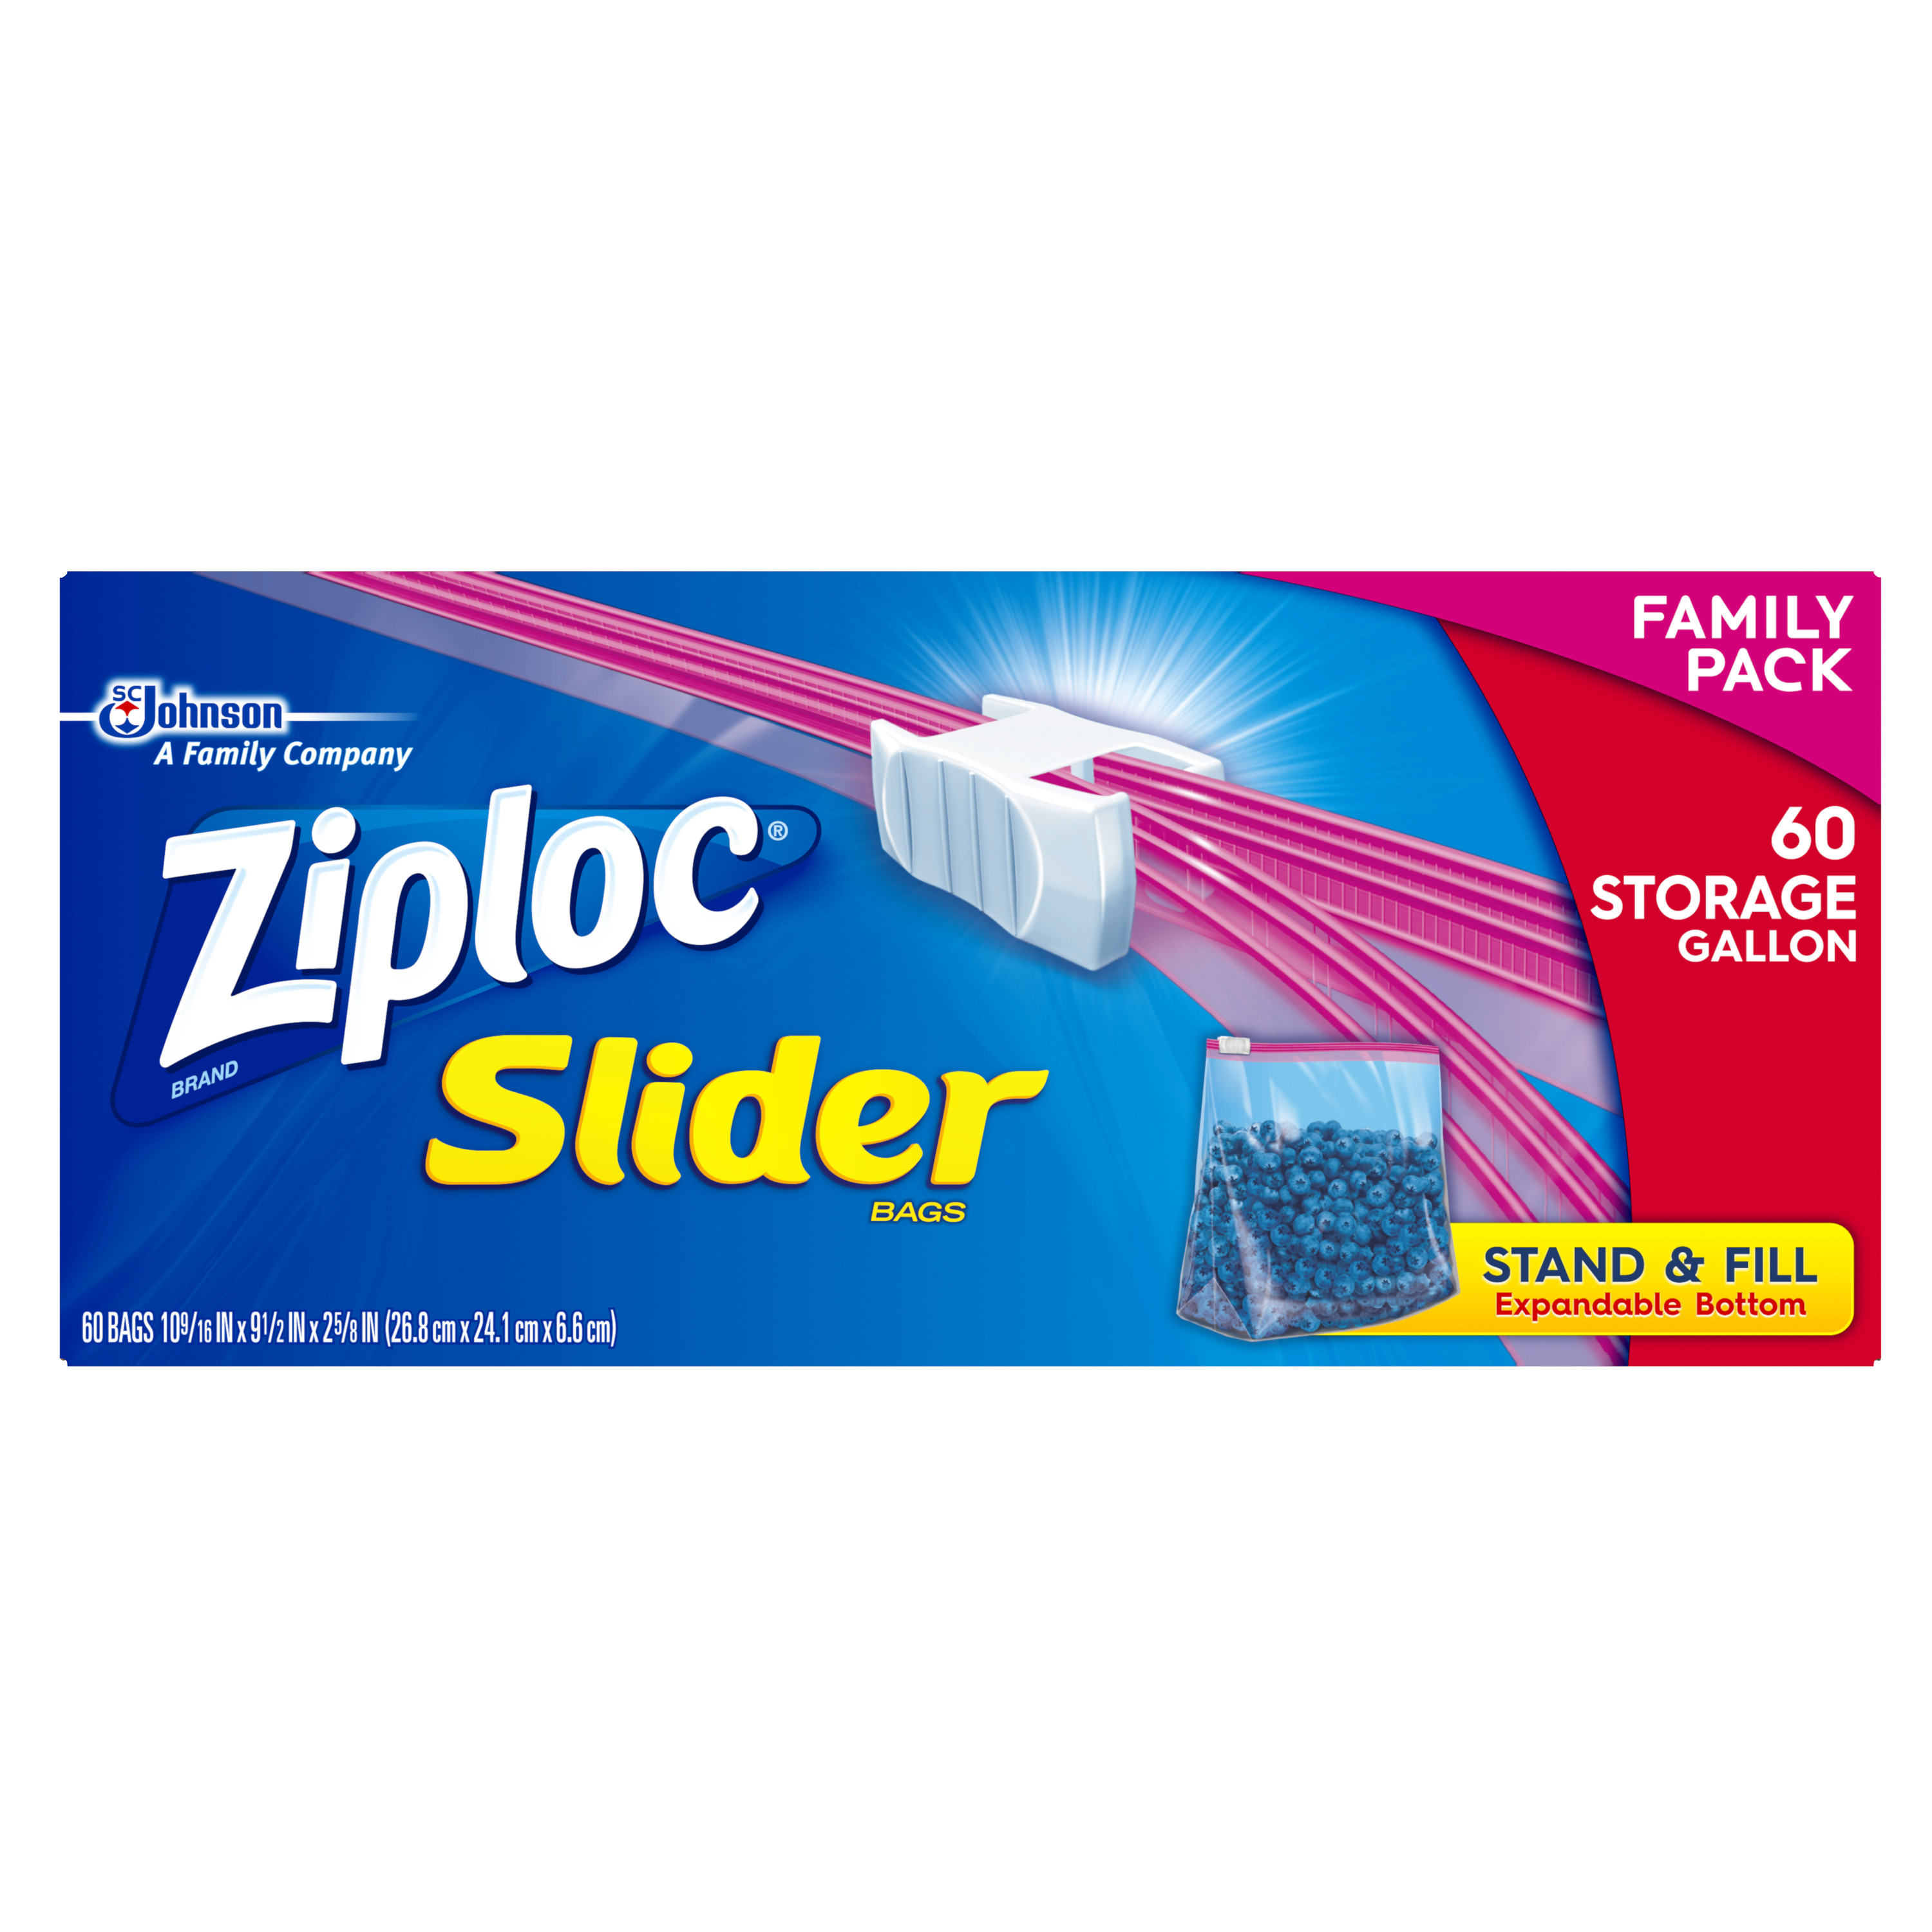 Ziploc Slider Zipper Bags, Gallon, 60 Ct